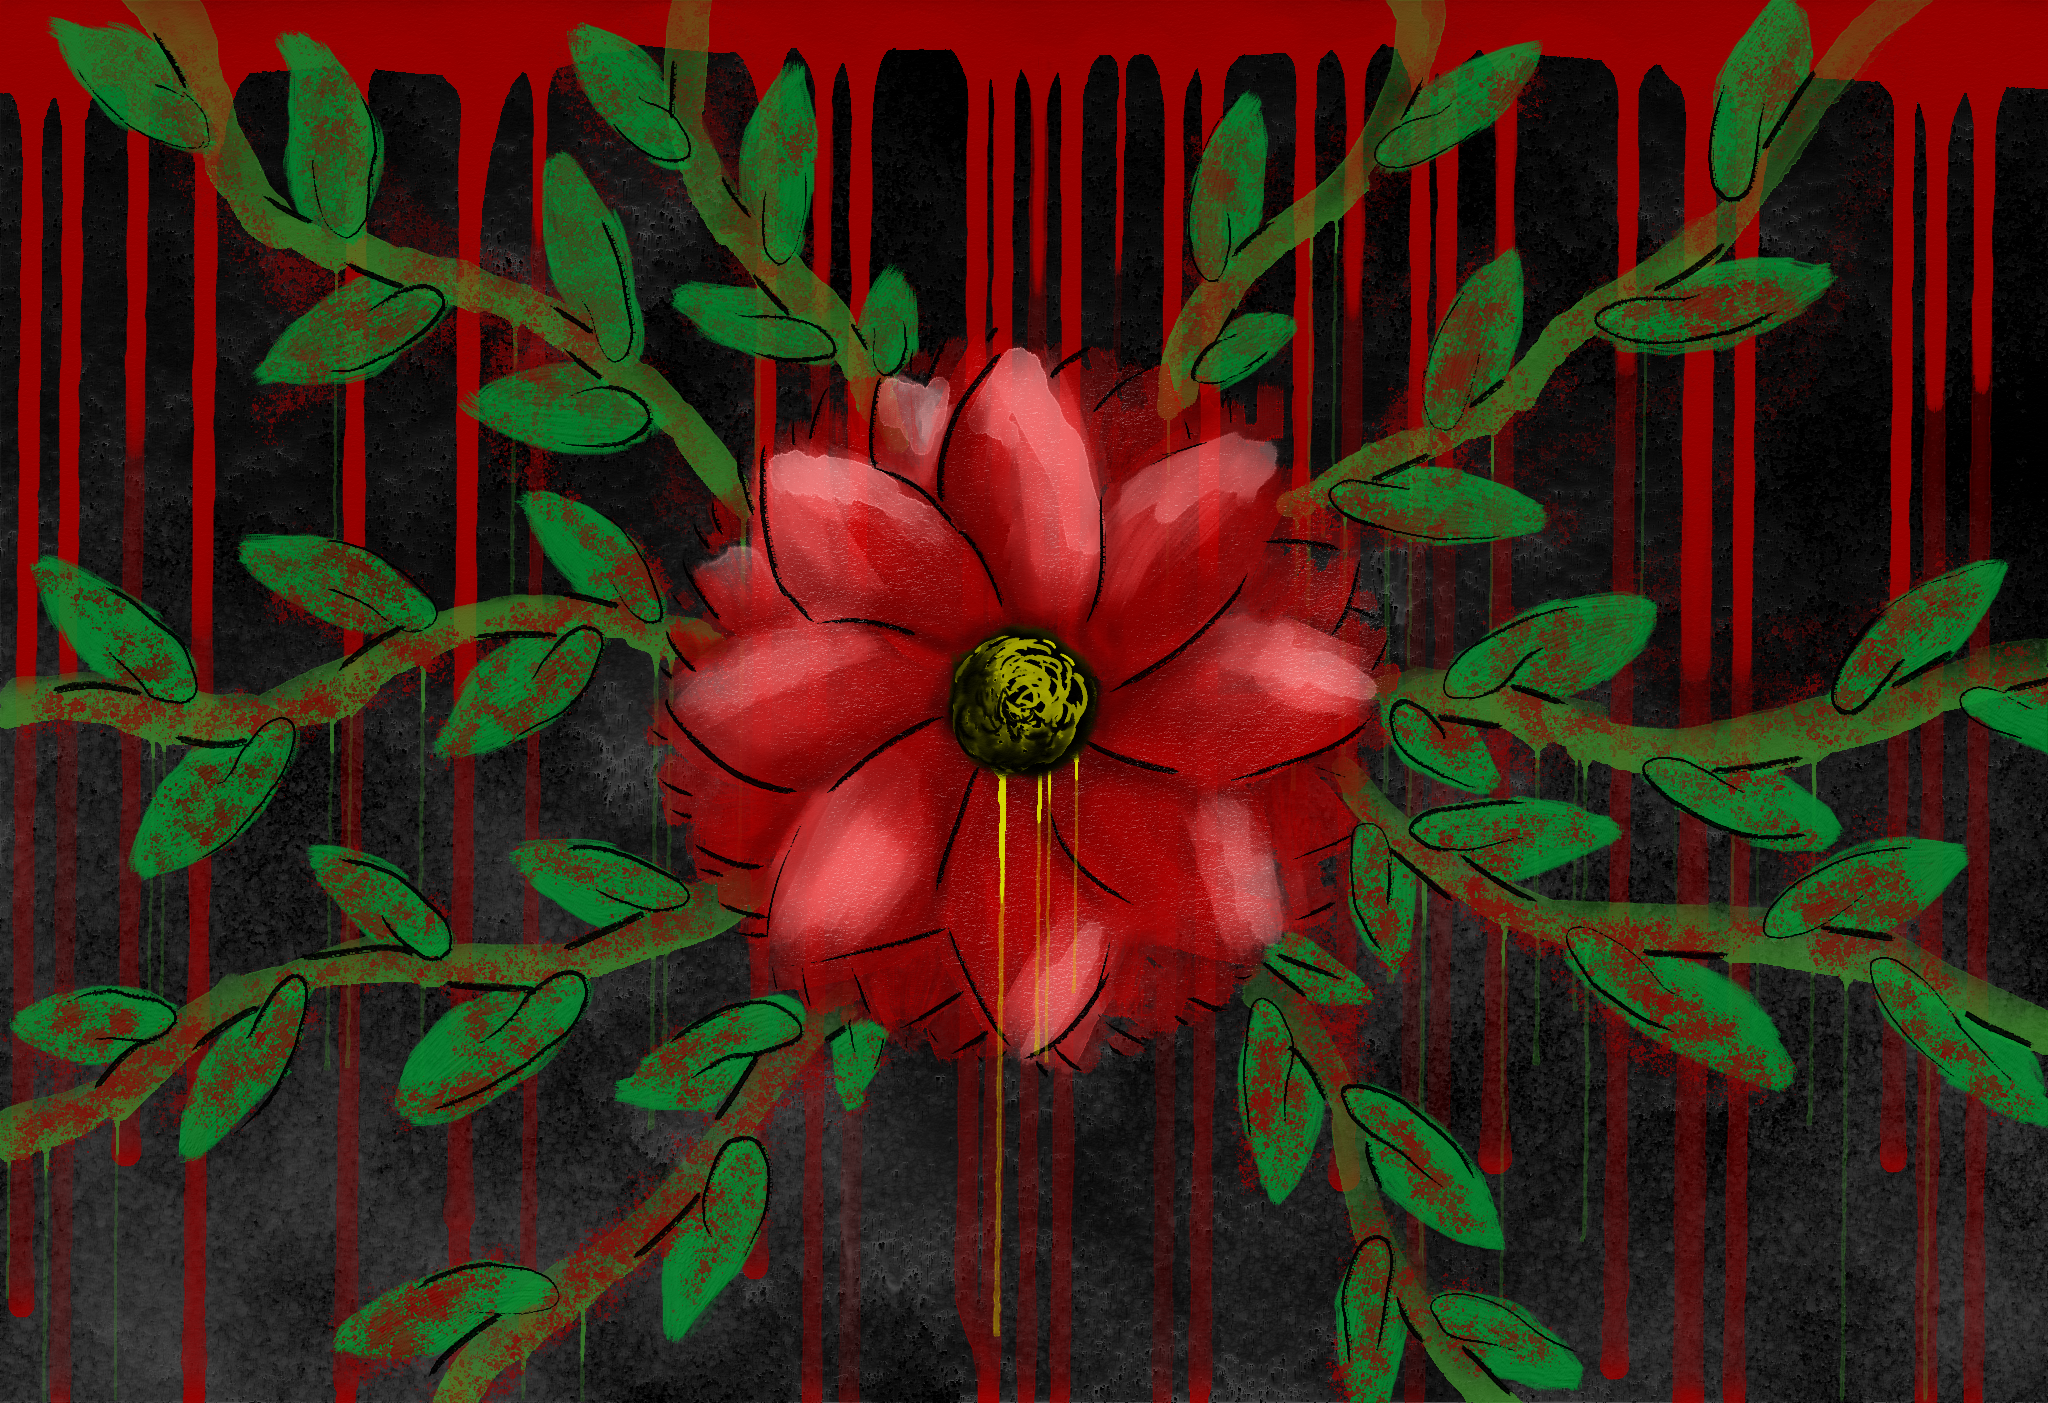 Red flower with branching vines on a speckled grey/black background. Paint drips down from vines, the flower, and the top of the painting.